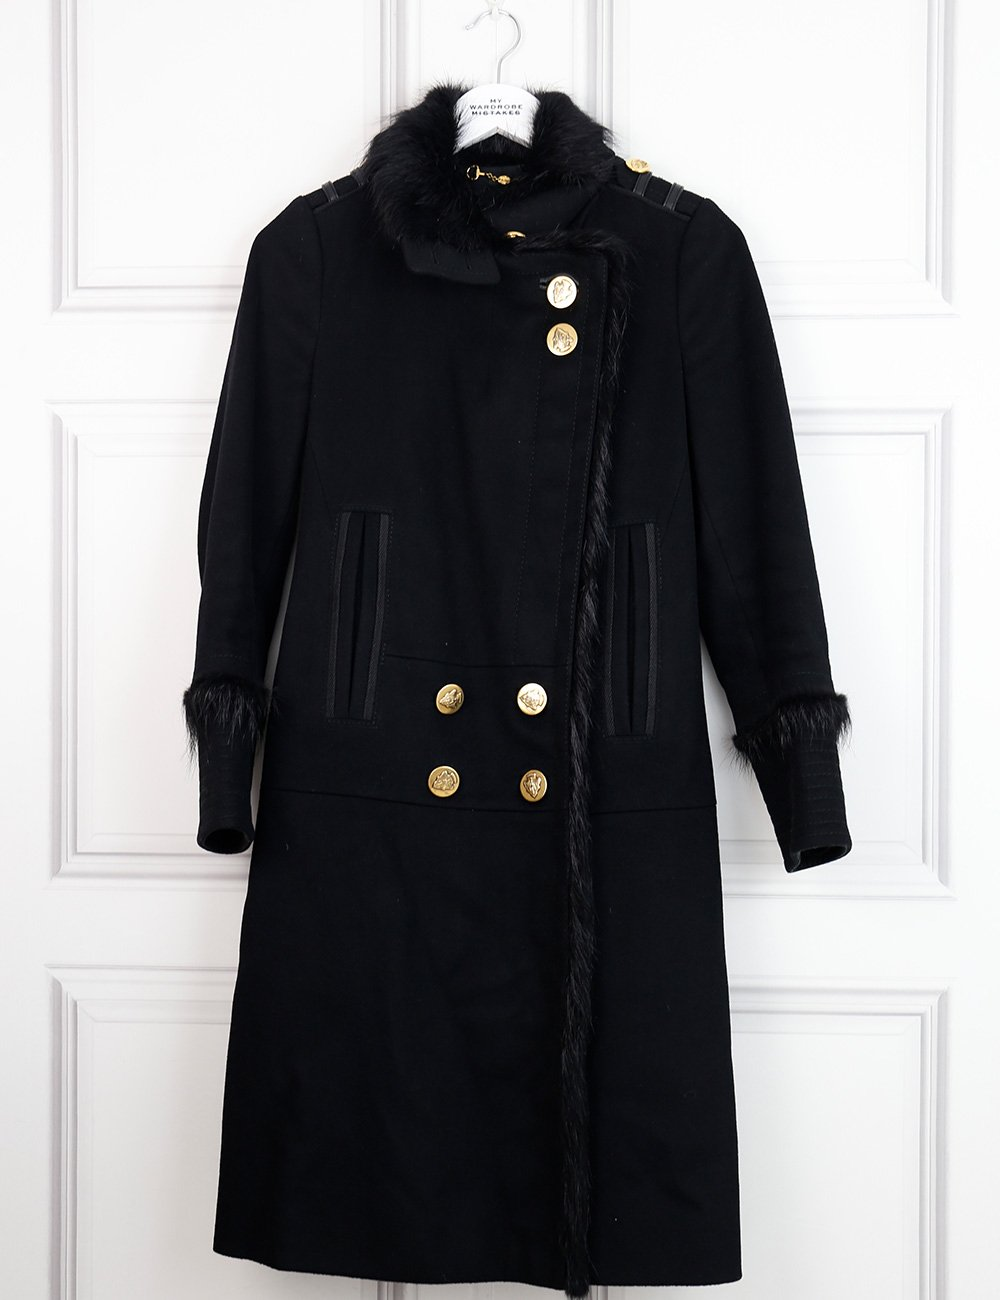 Gucci black long military wool coat with fur details 8UK- My Wardrobe Mistakes